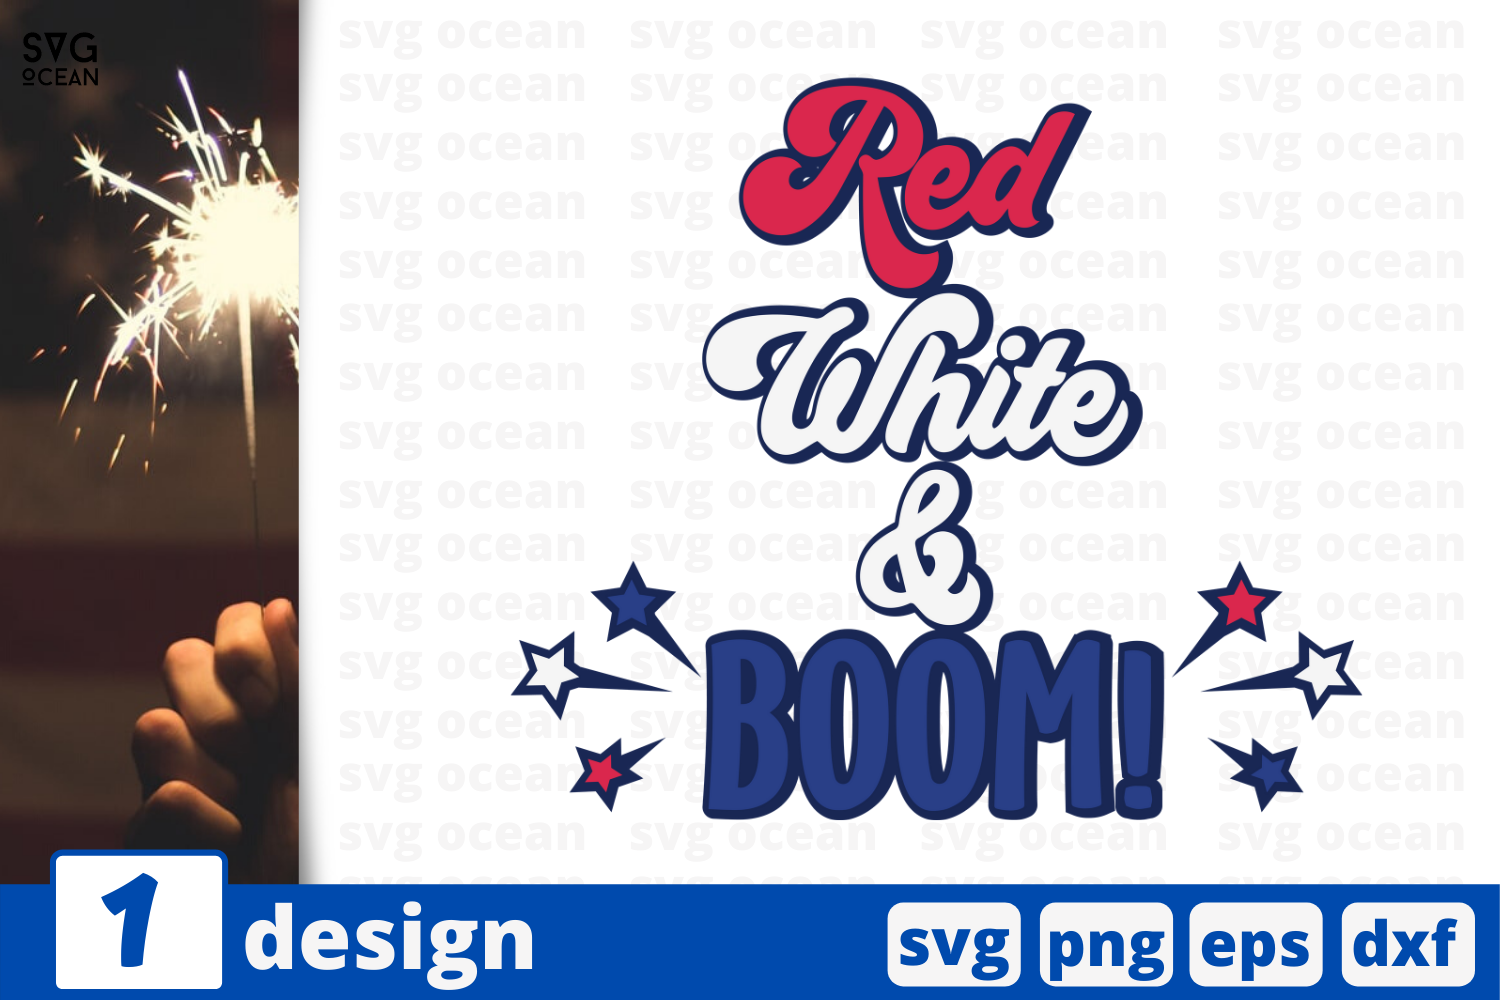 1 Red White Boom Svg Bundle Graphic By Svgocean Creative Fabrica